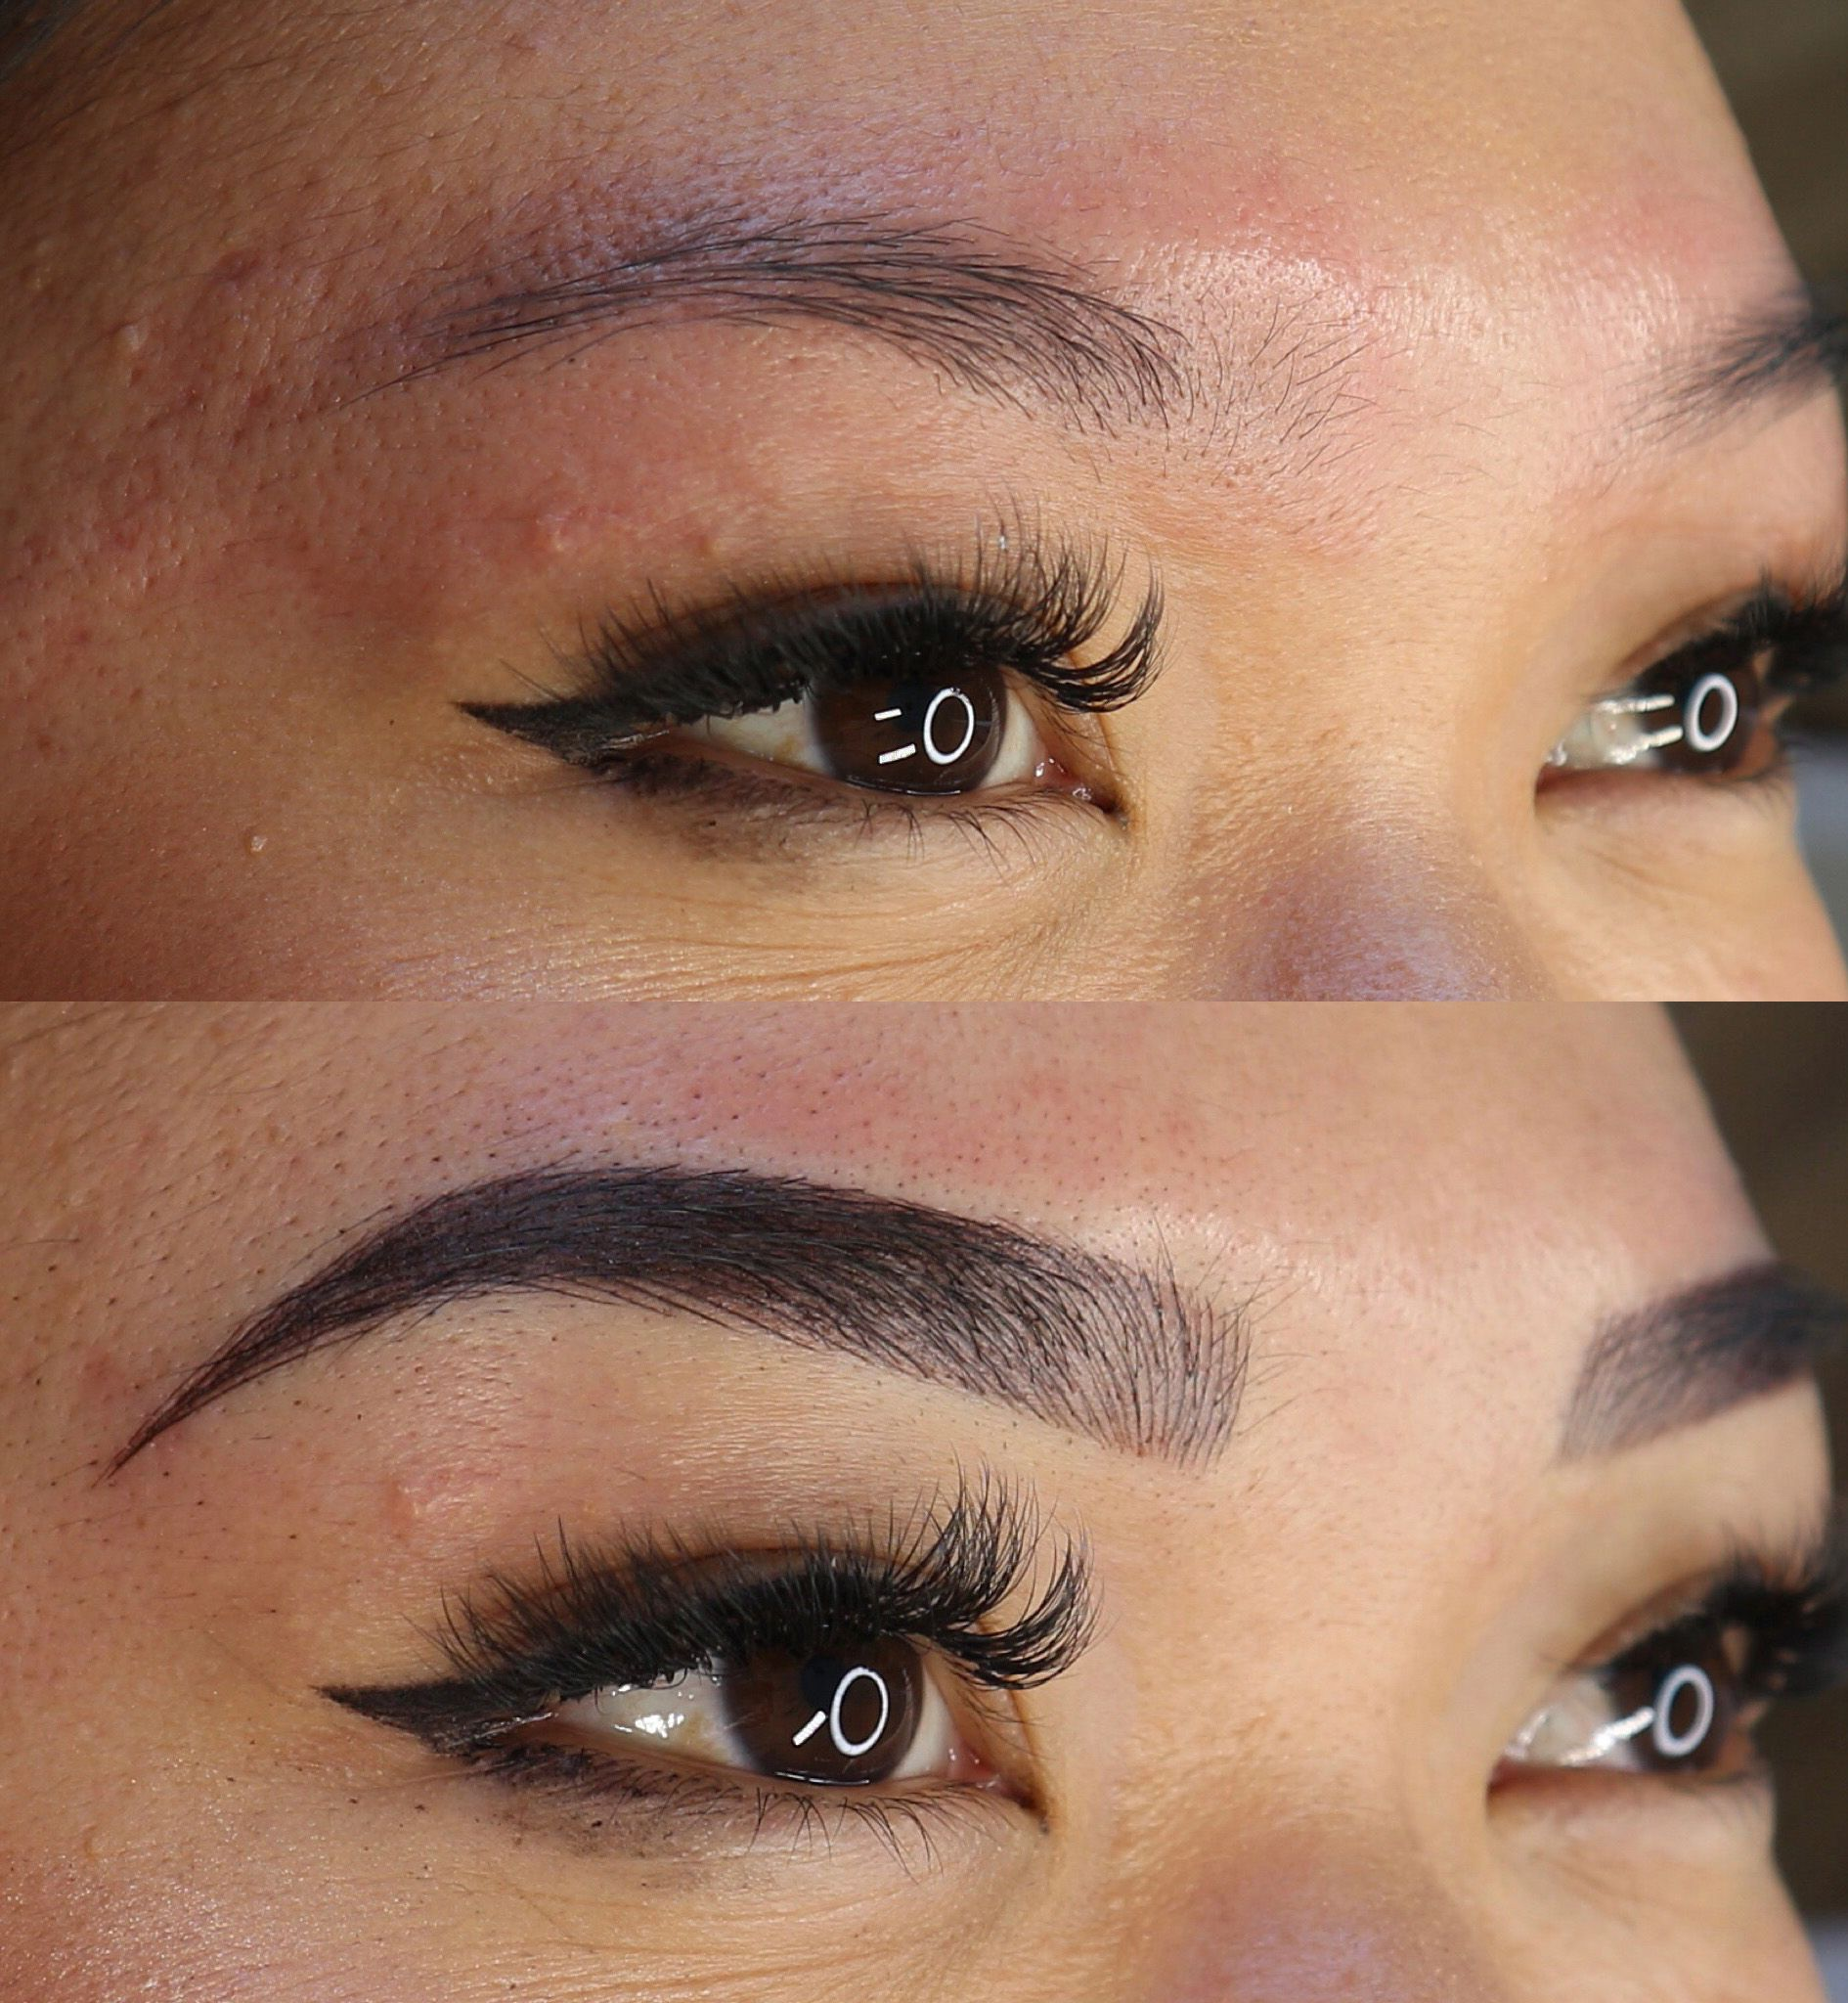 Eyebrow Tattoo Before And After: Before And After Photo Of Combo Brows From Beautiful Brow